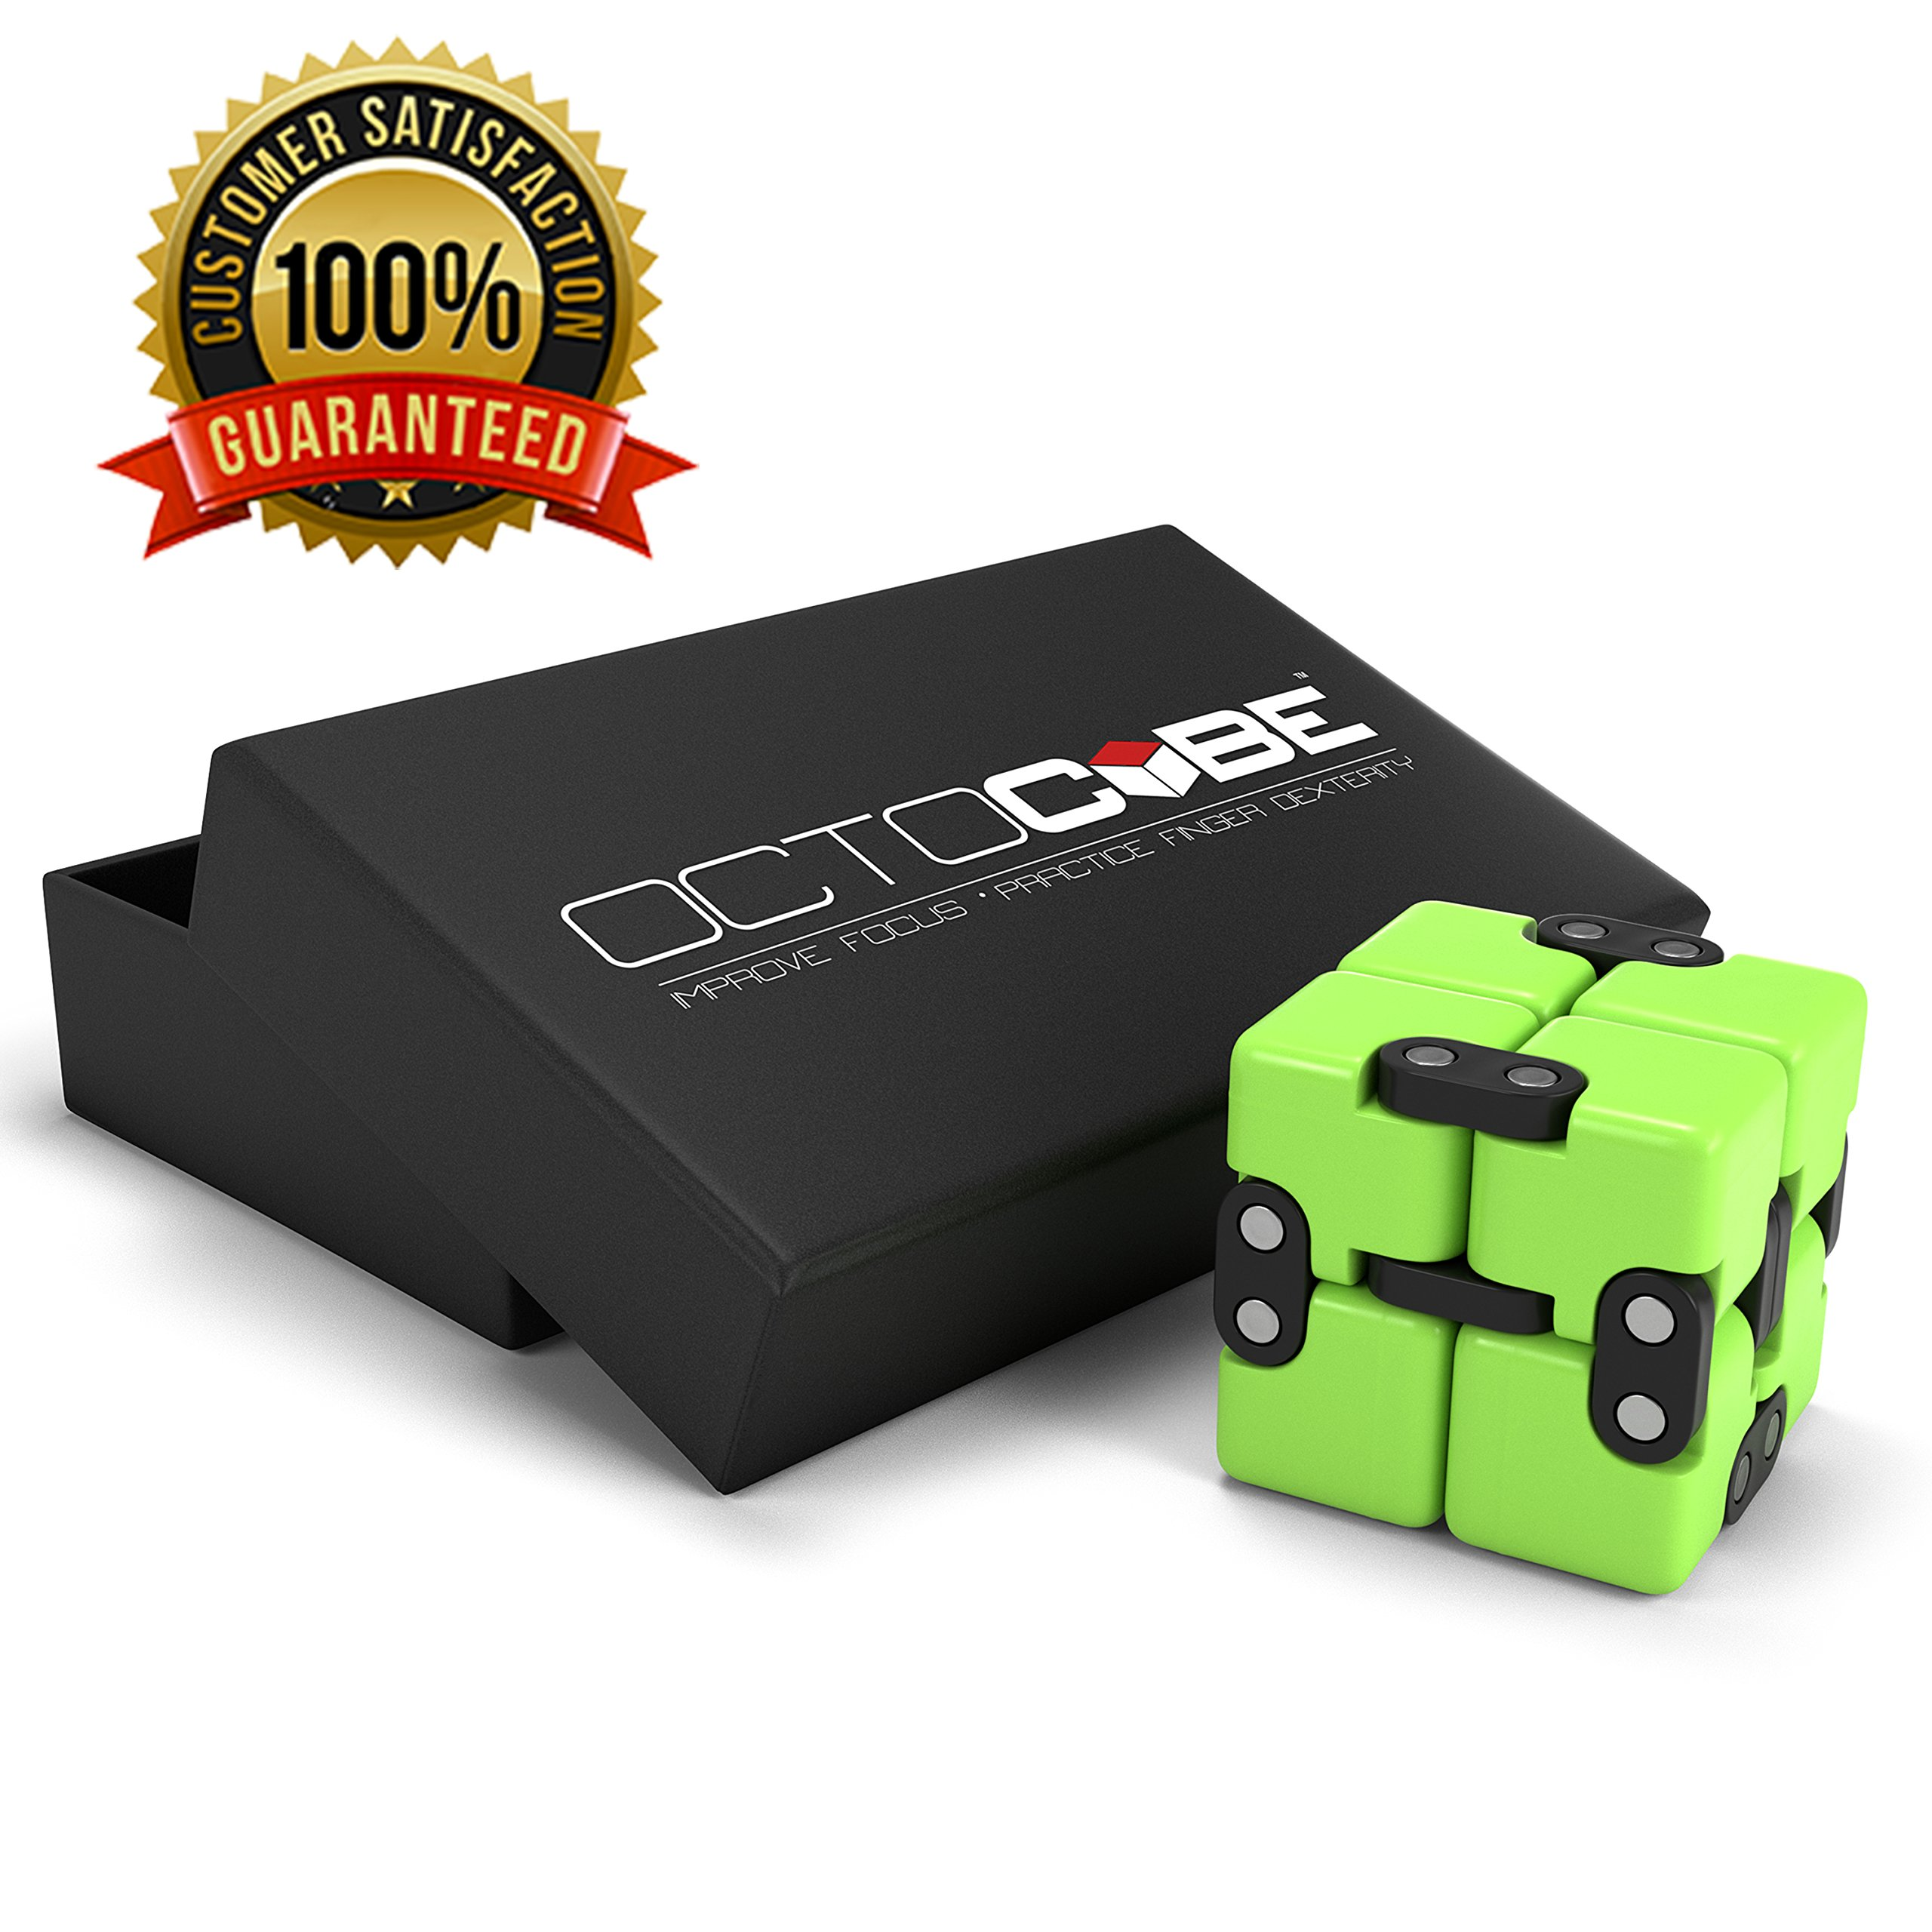 OCTOCUBE Infinity Cube Fidget Toy w/Gift Box - Luxury Infinite Cool Gadget for Kids, Adults - Prime Sensory Stress Relief, Pressure Reduction Unique Distraction for Autism, Quit Smoking - Green